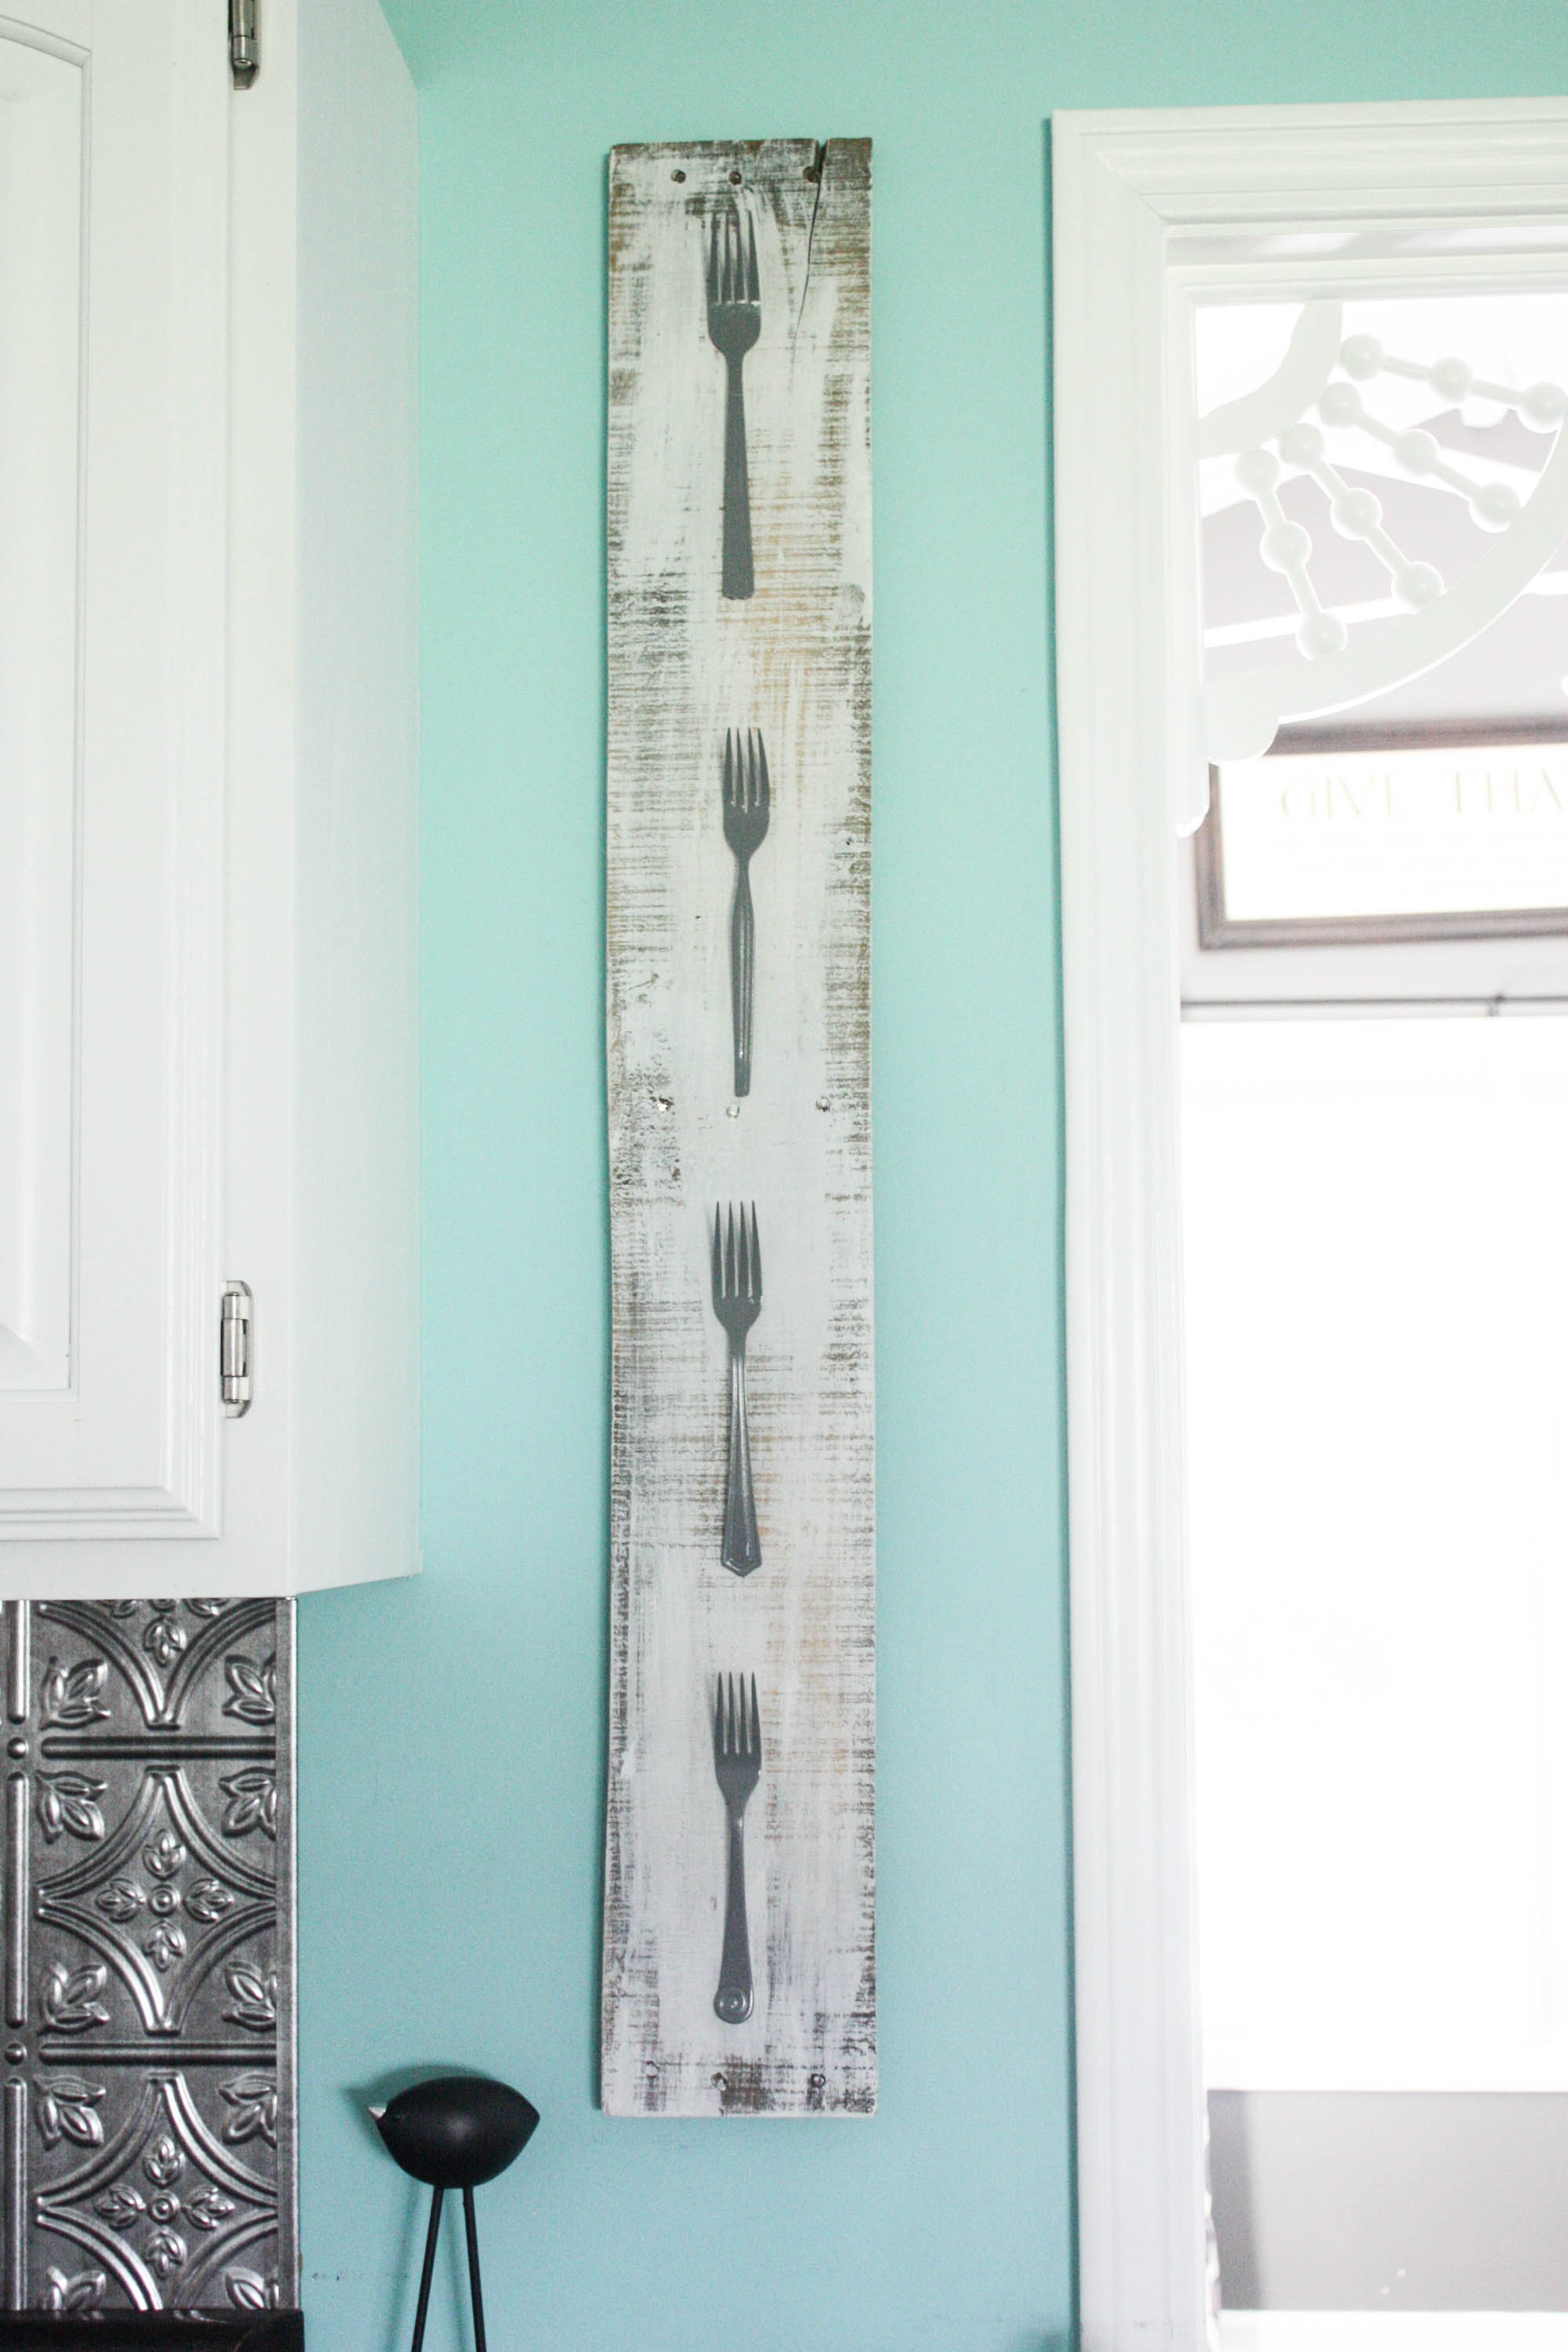 DIY Kitchen Wall Art {Using Random Forks}